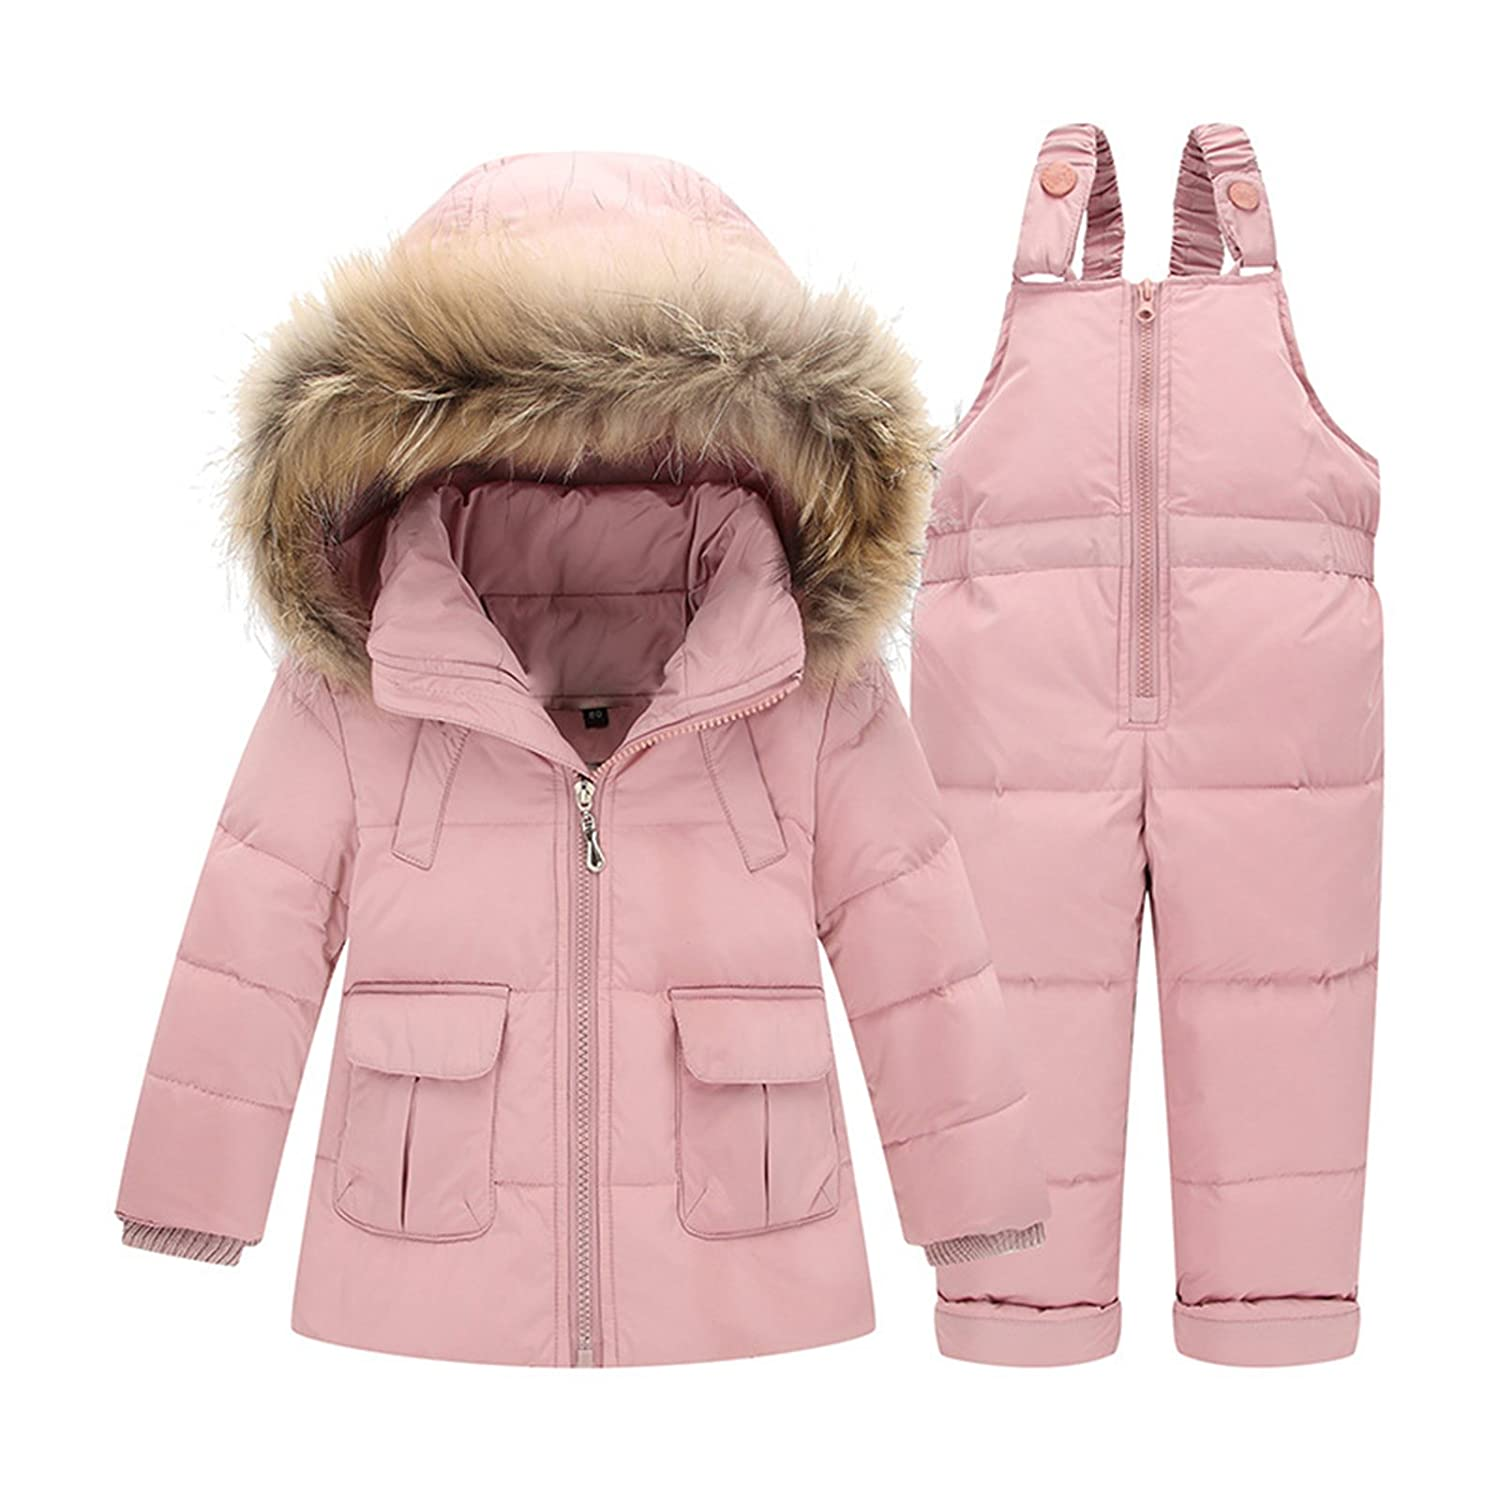 da1c78ccb Amazon.com: Luodemiss Girl's Baby Two Pieces Thicken Down Snowsuit Hooded  Jacket Lightweight Skating Bibs: Clothing